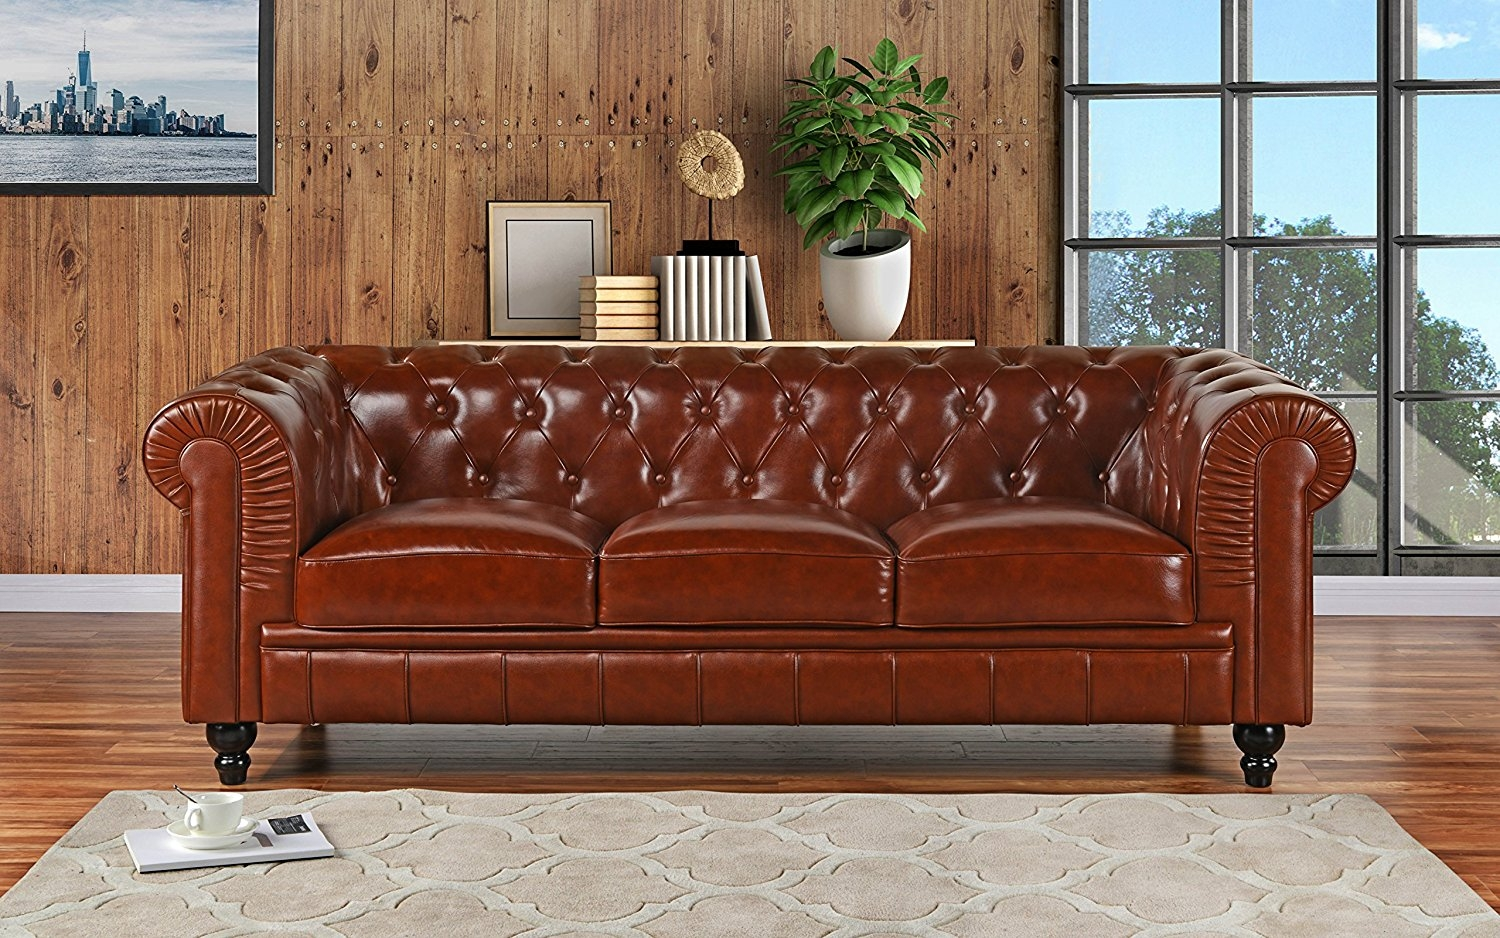 Classic Scroll Arm Real Leather Chesterfield Sofa (Light Brown)